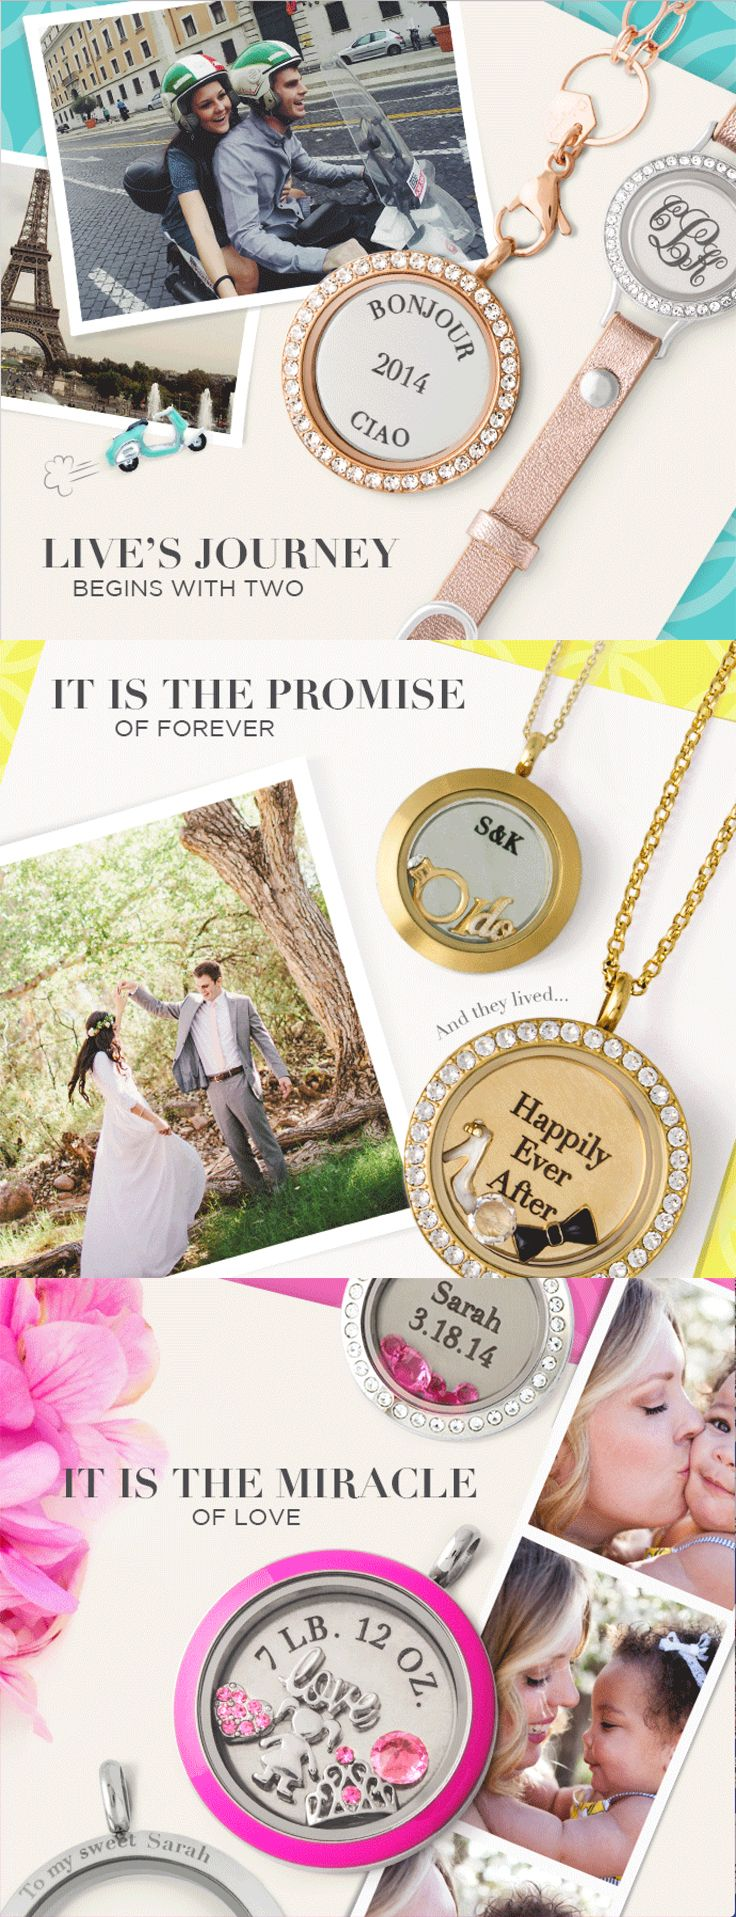 Custom Inscribed Lockets and Plates. Large plates Personalize an Origami Owl Living Locket for you or as a gift for someone you love! Join my team for a discount! www.hollypike.origamiowl.com or contact me at hp_pike@yahoo.com